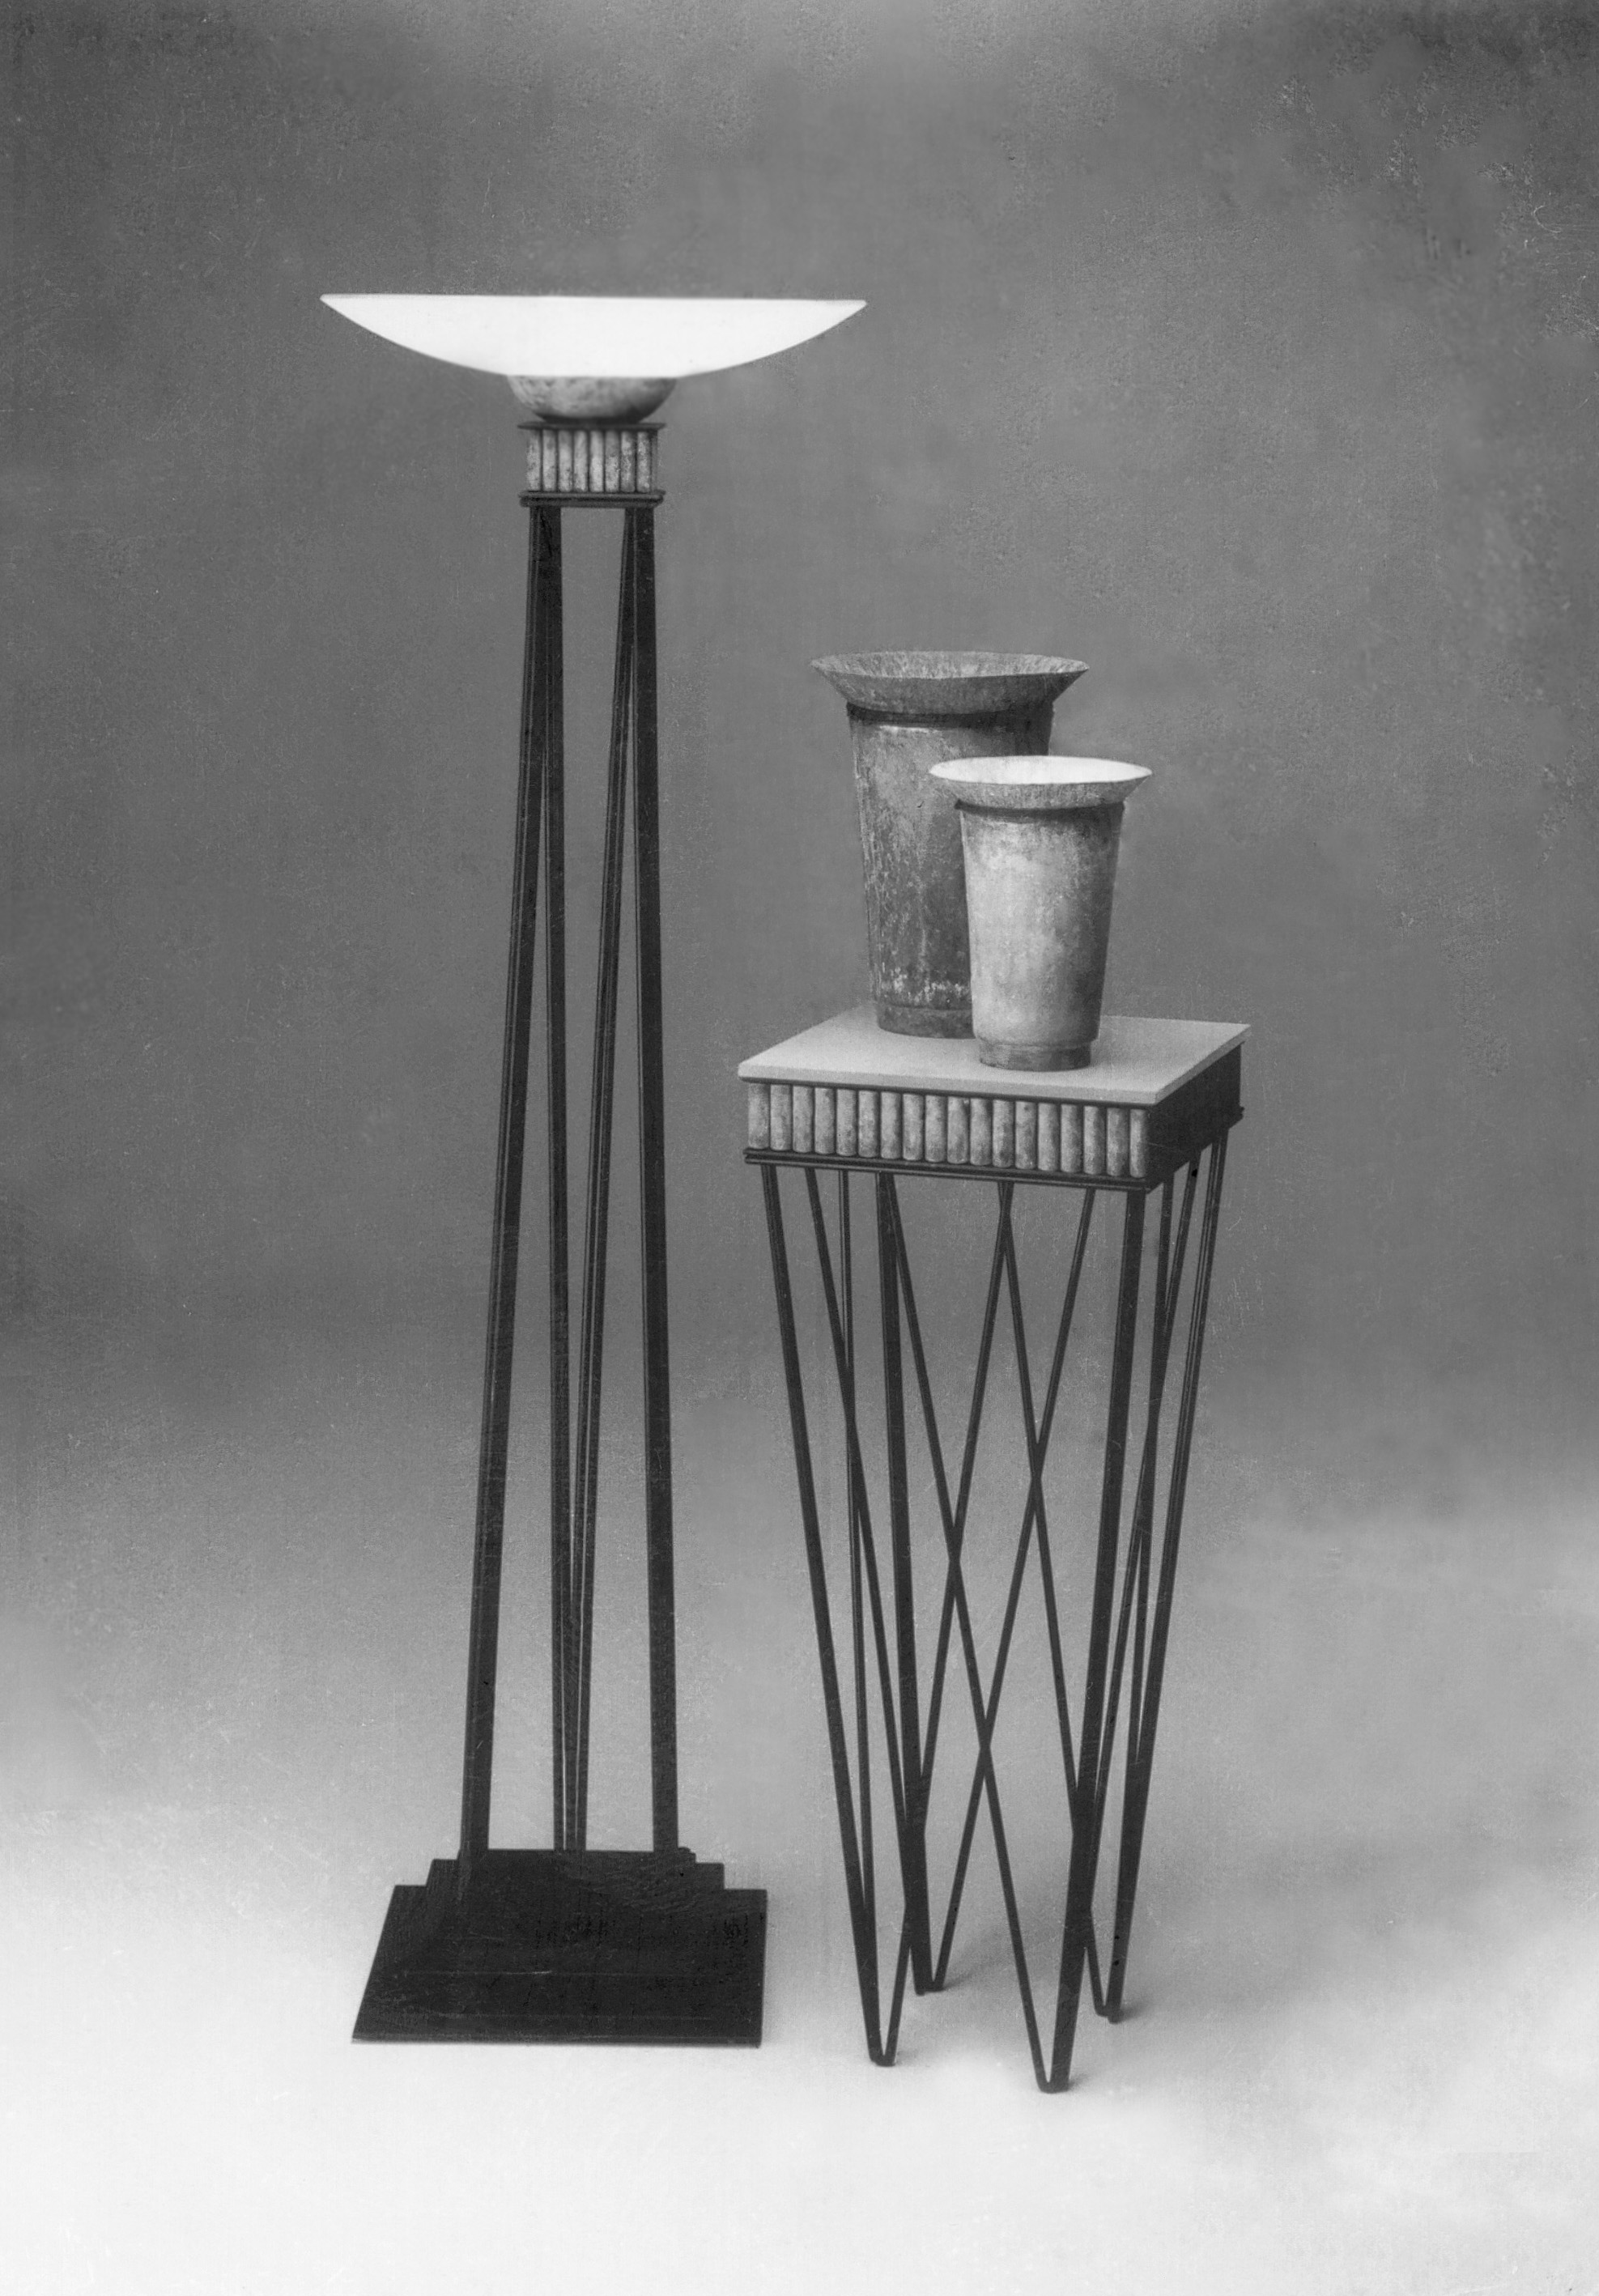 Floor lamp, pedestal and True vase forms